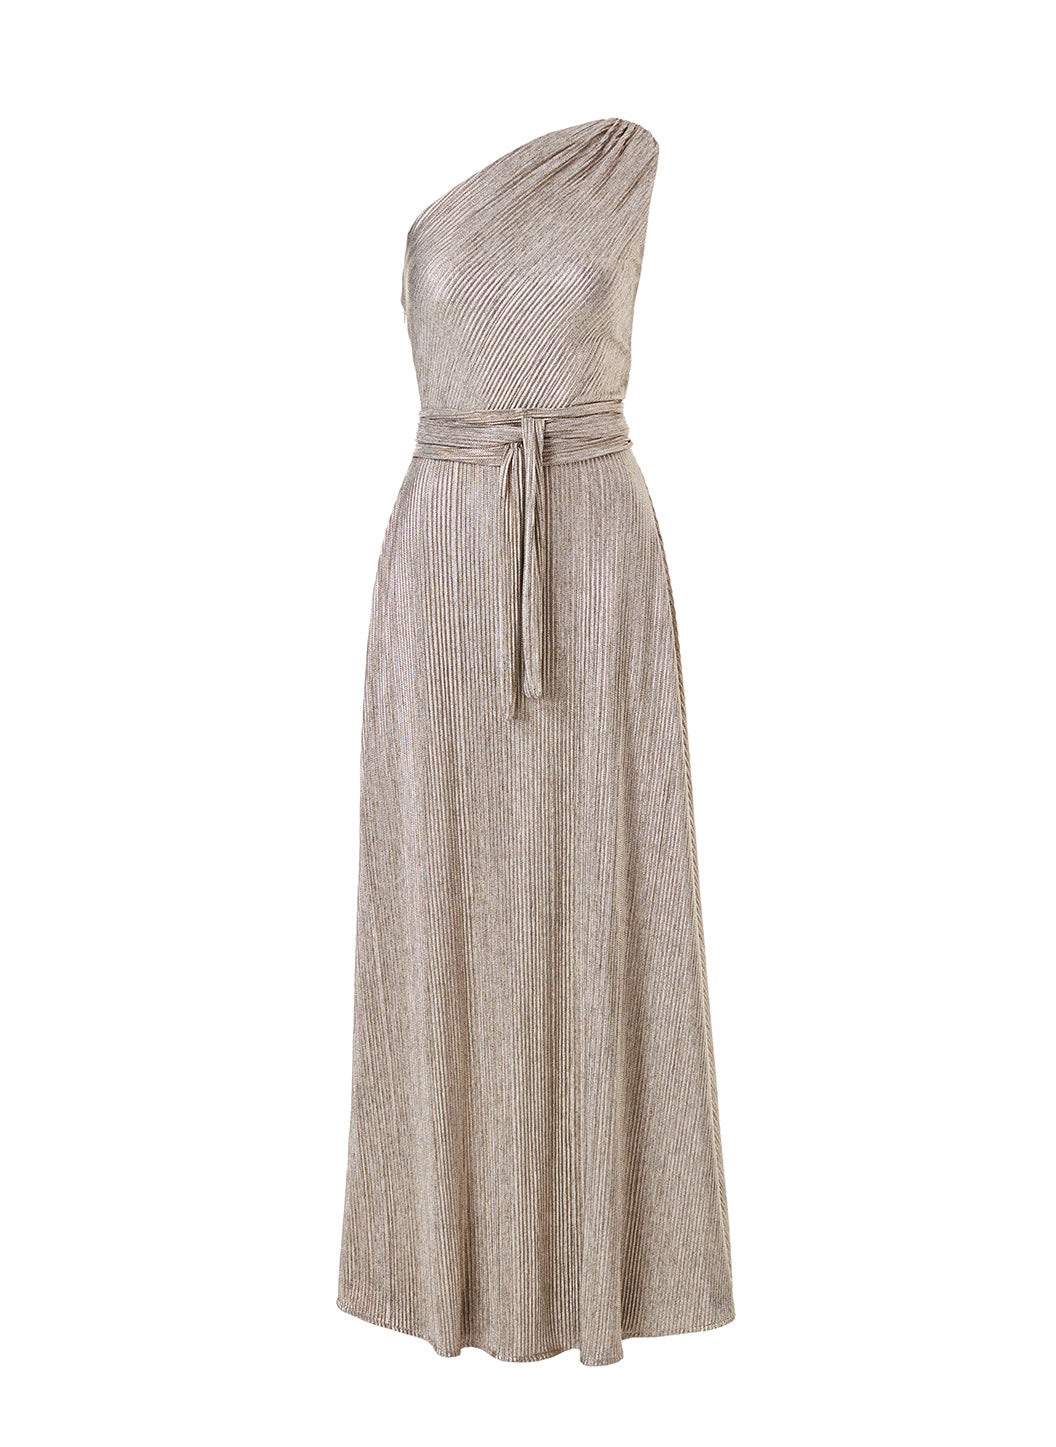 Look 2 One Shoulder Draped Maxi Dress Metal